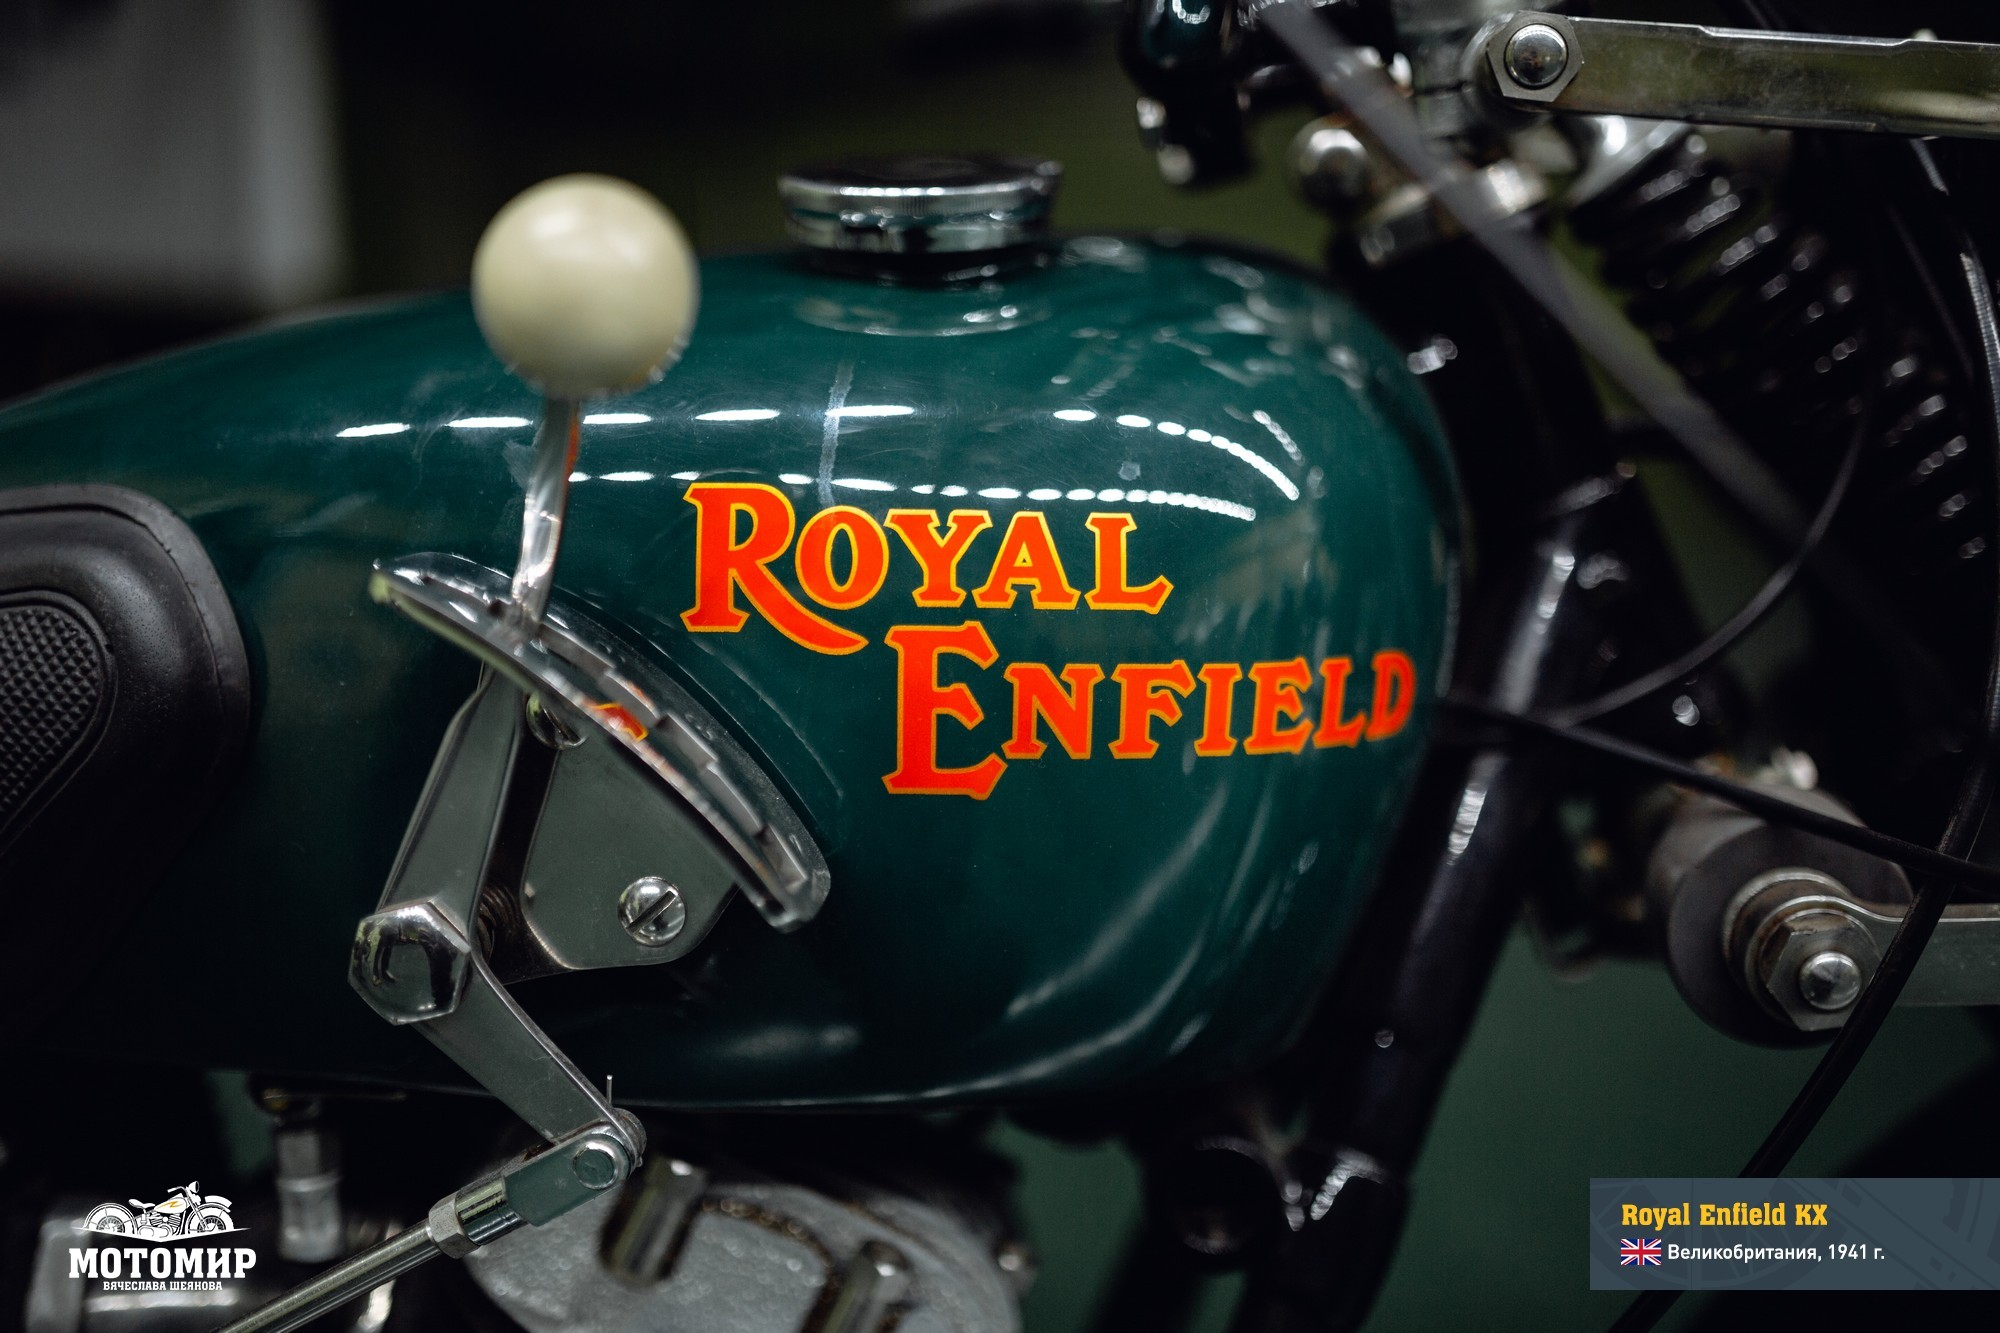 royal-enfield-kx-201601-web-34